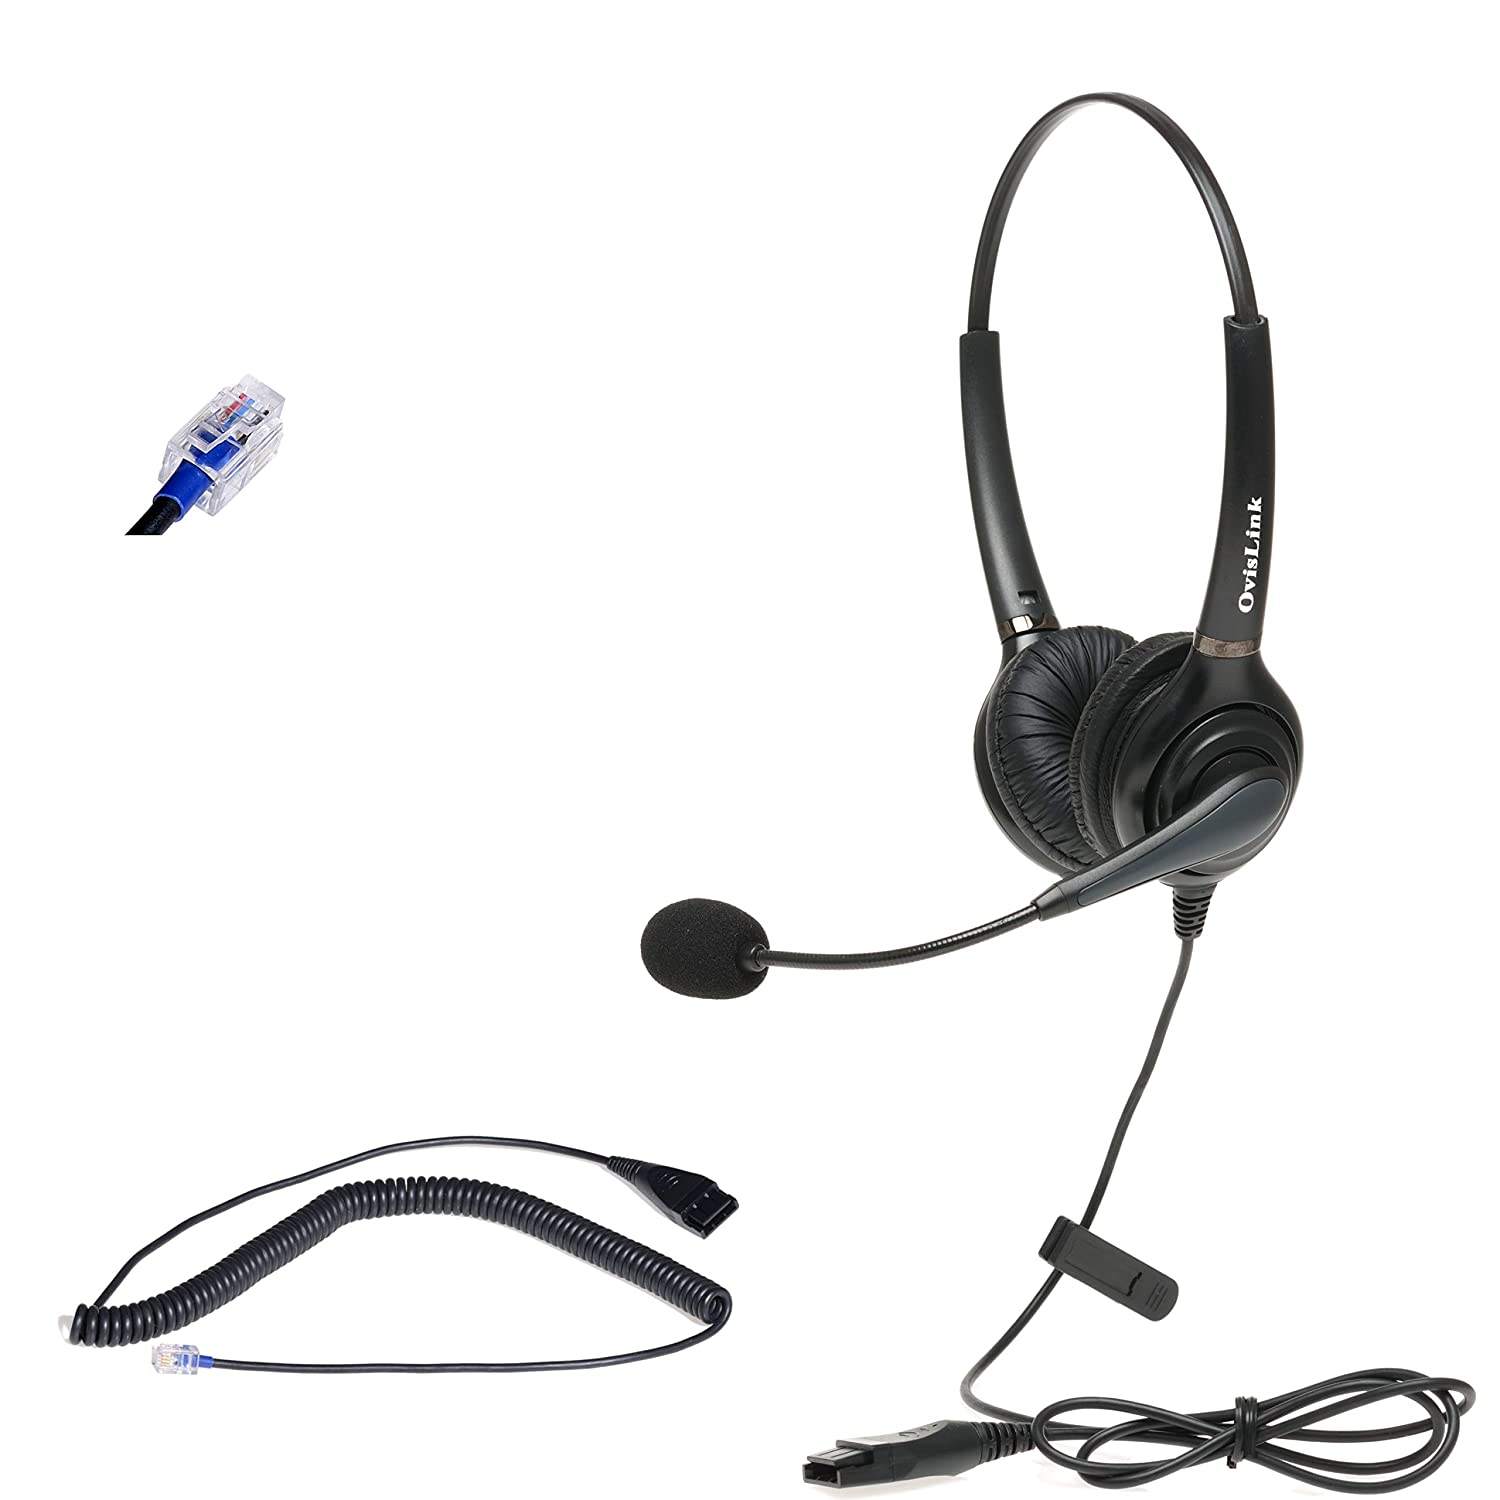 OvisLink Call Center Headset Compatible with Polycom Phone with RJ9 Headset Jack | Dual Ear Headset with Noise Canceling Microphone Quick Disconnect Cord | HD Voice Quality | Tangle Free Headset Cord